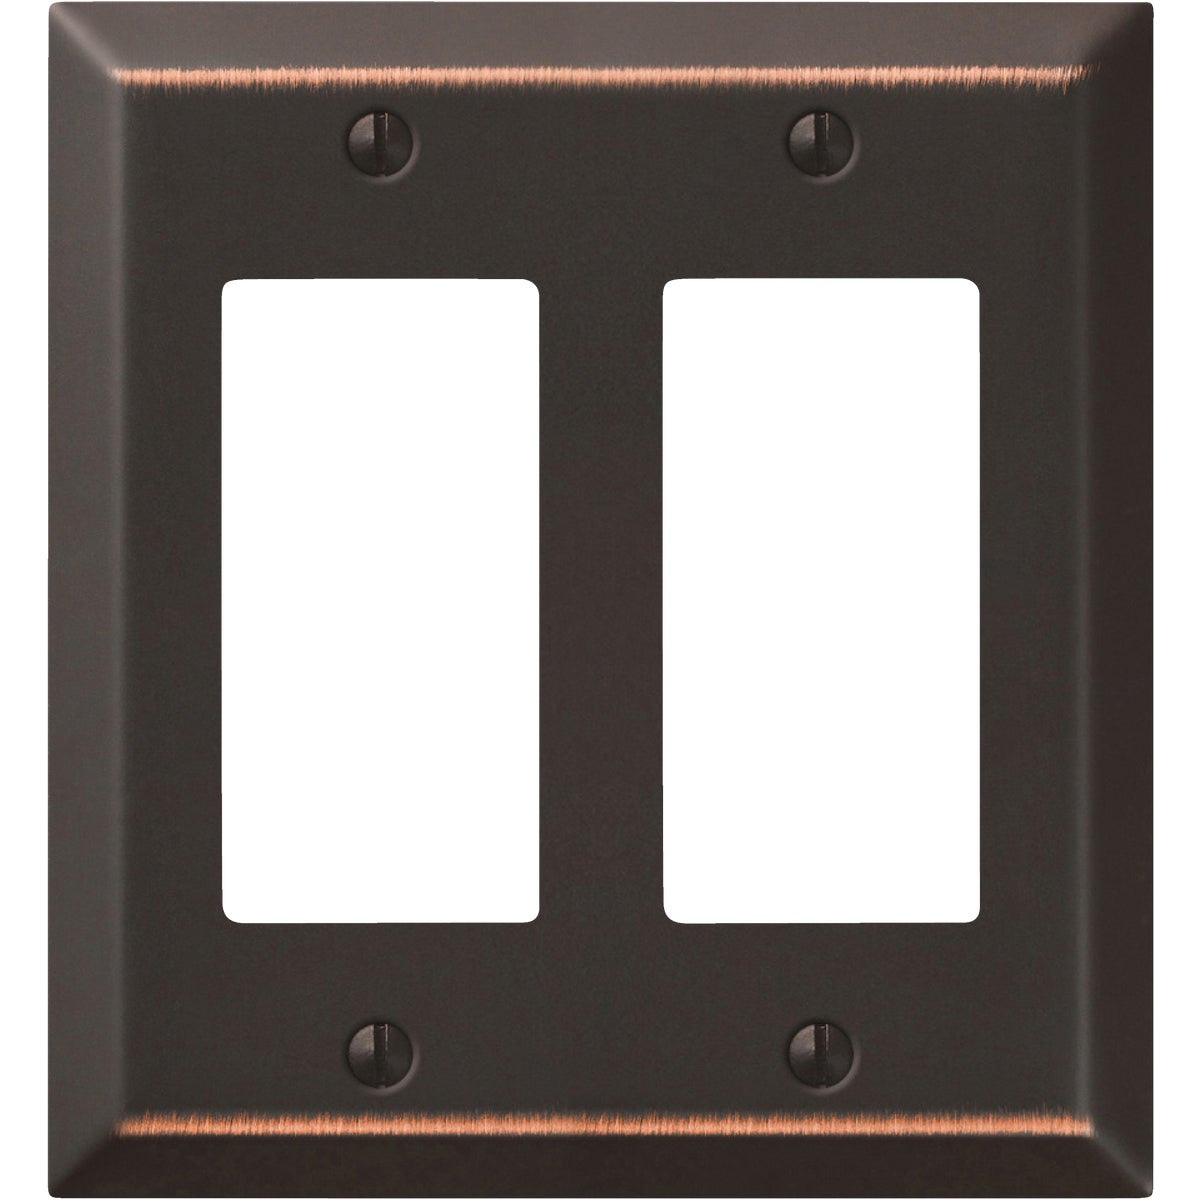 2RKR ABRZ WALLPLATE - 9AZ127 by Jackson Deerfield Mf